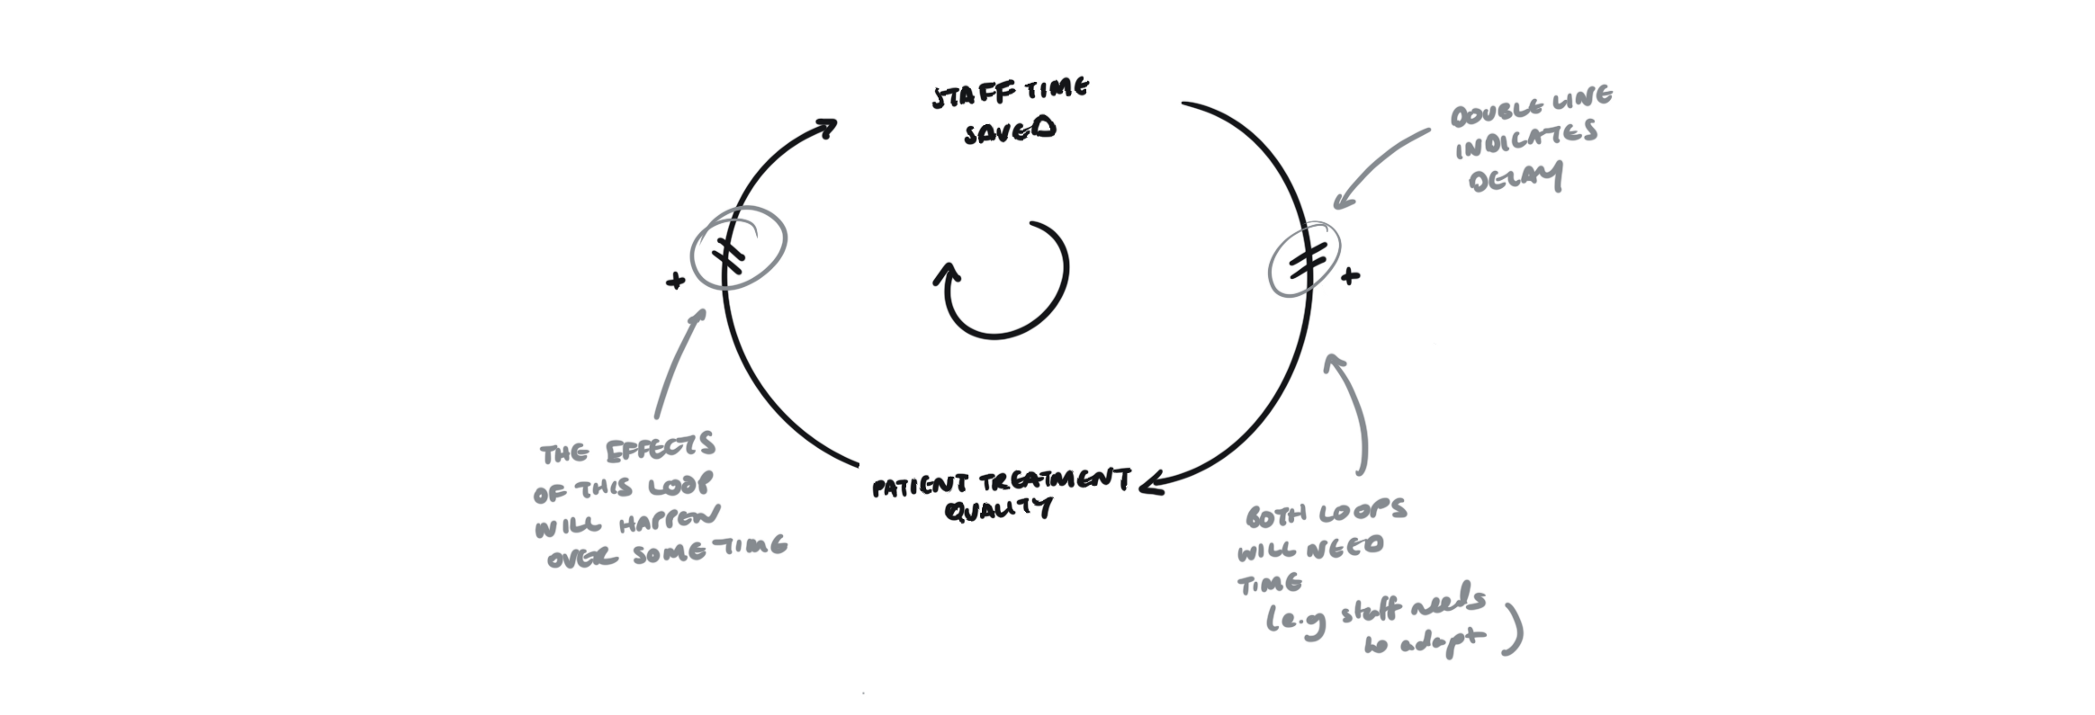 Diagram representing a delay within a causal loop.